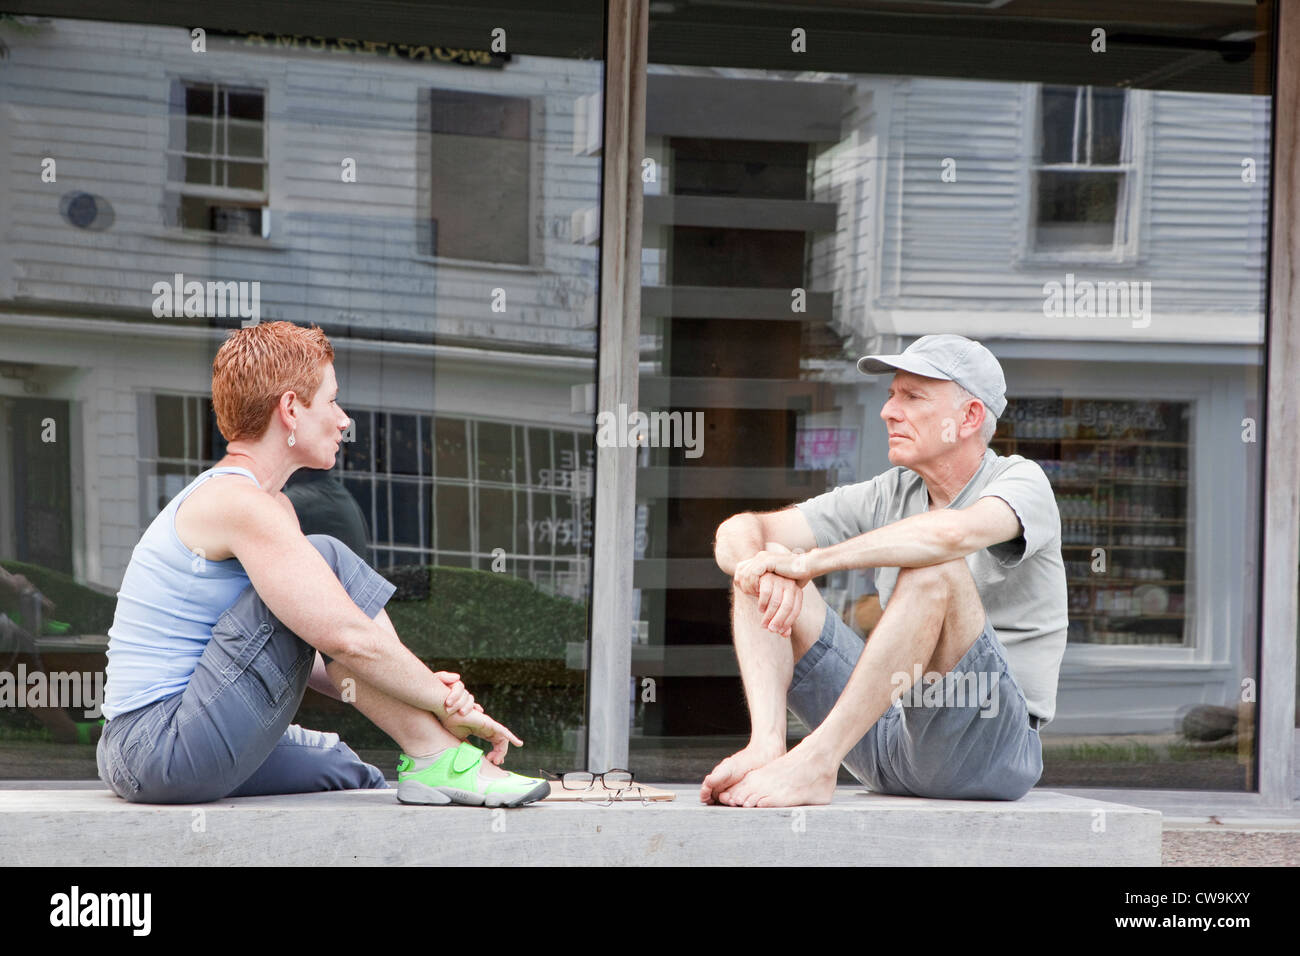 Woman and man talking while sitting on a bench outdoors. - Stock Image